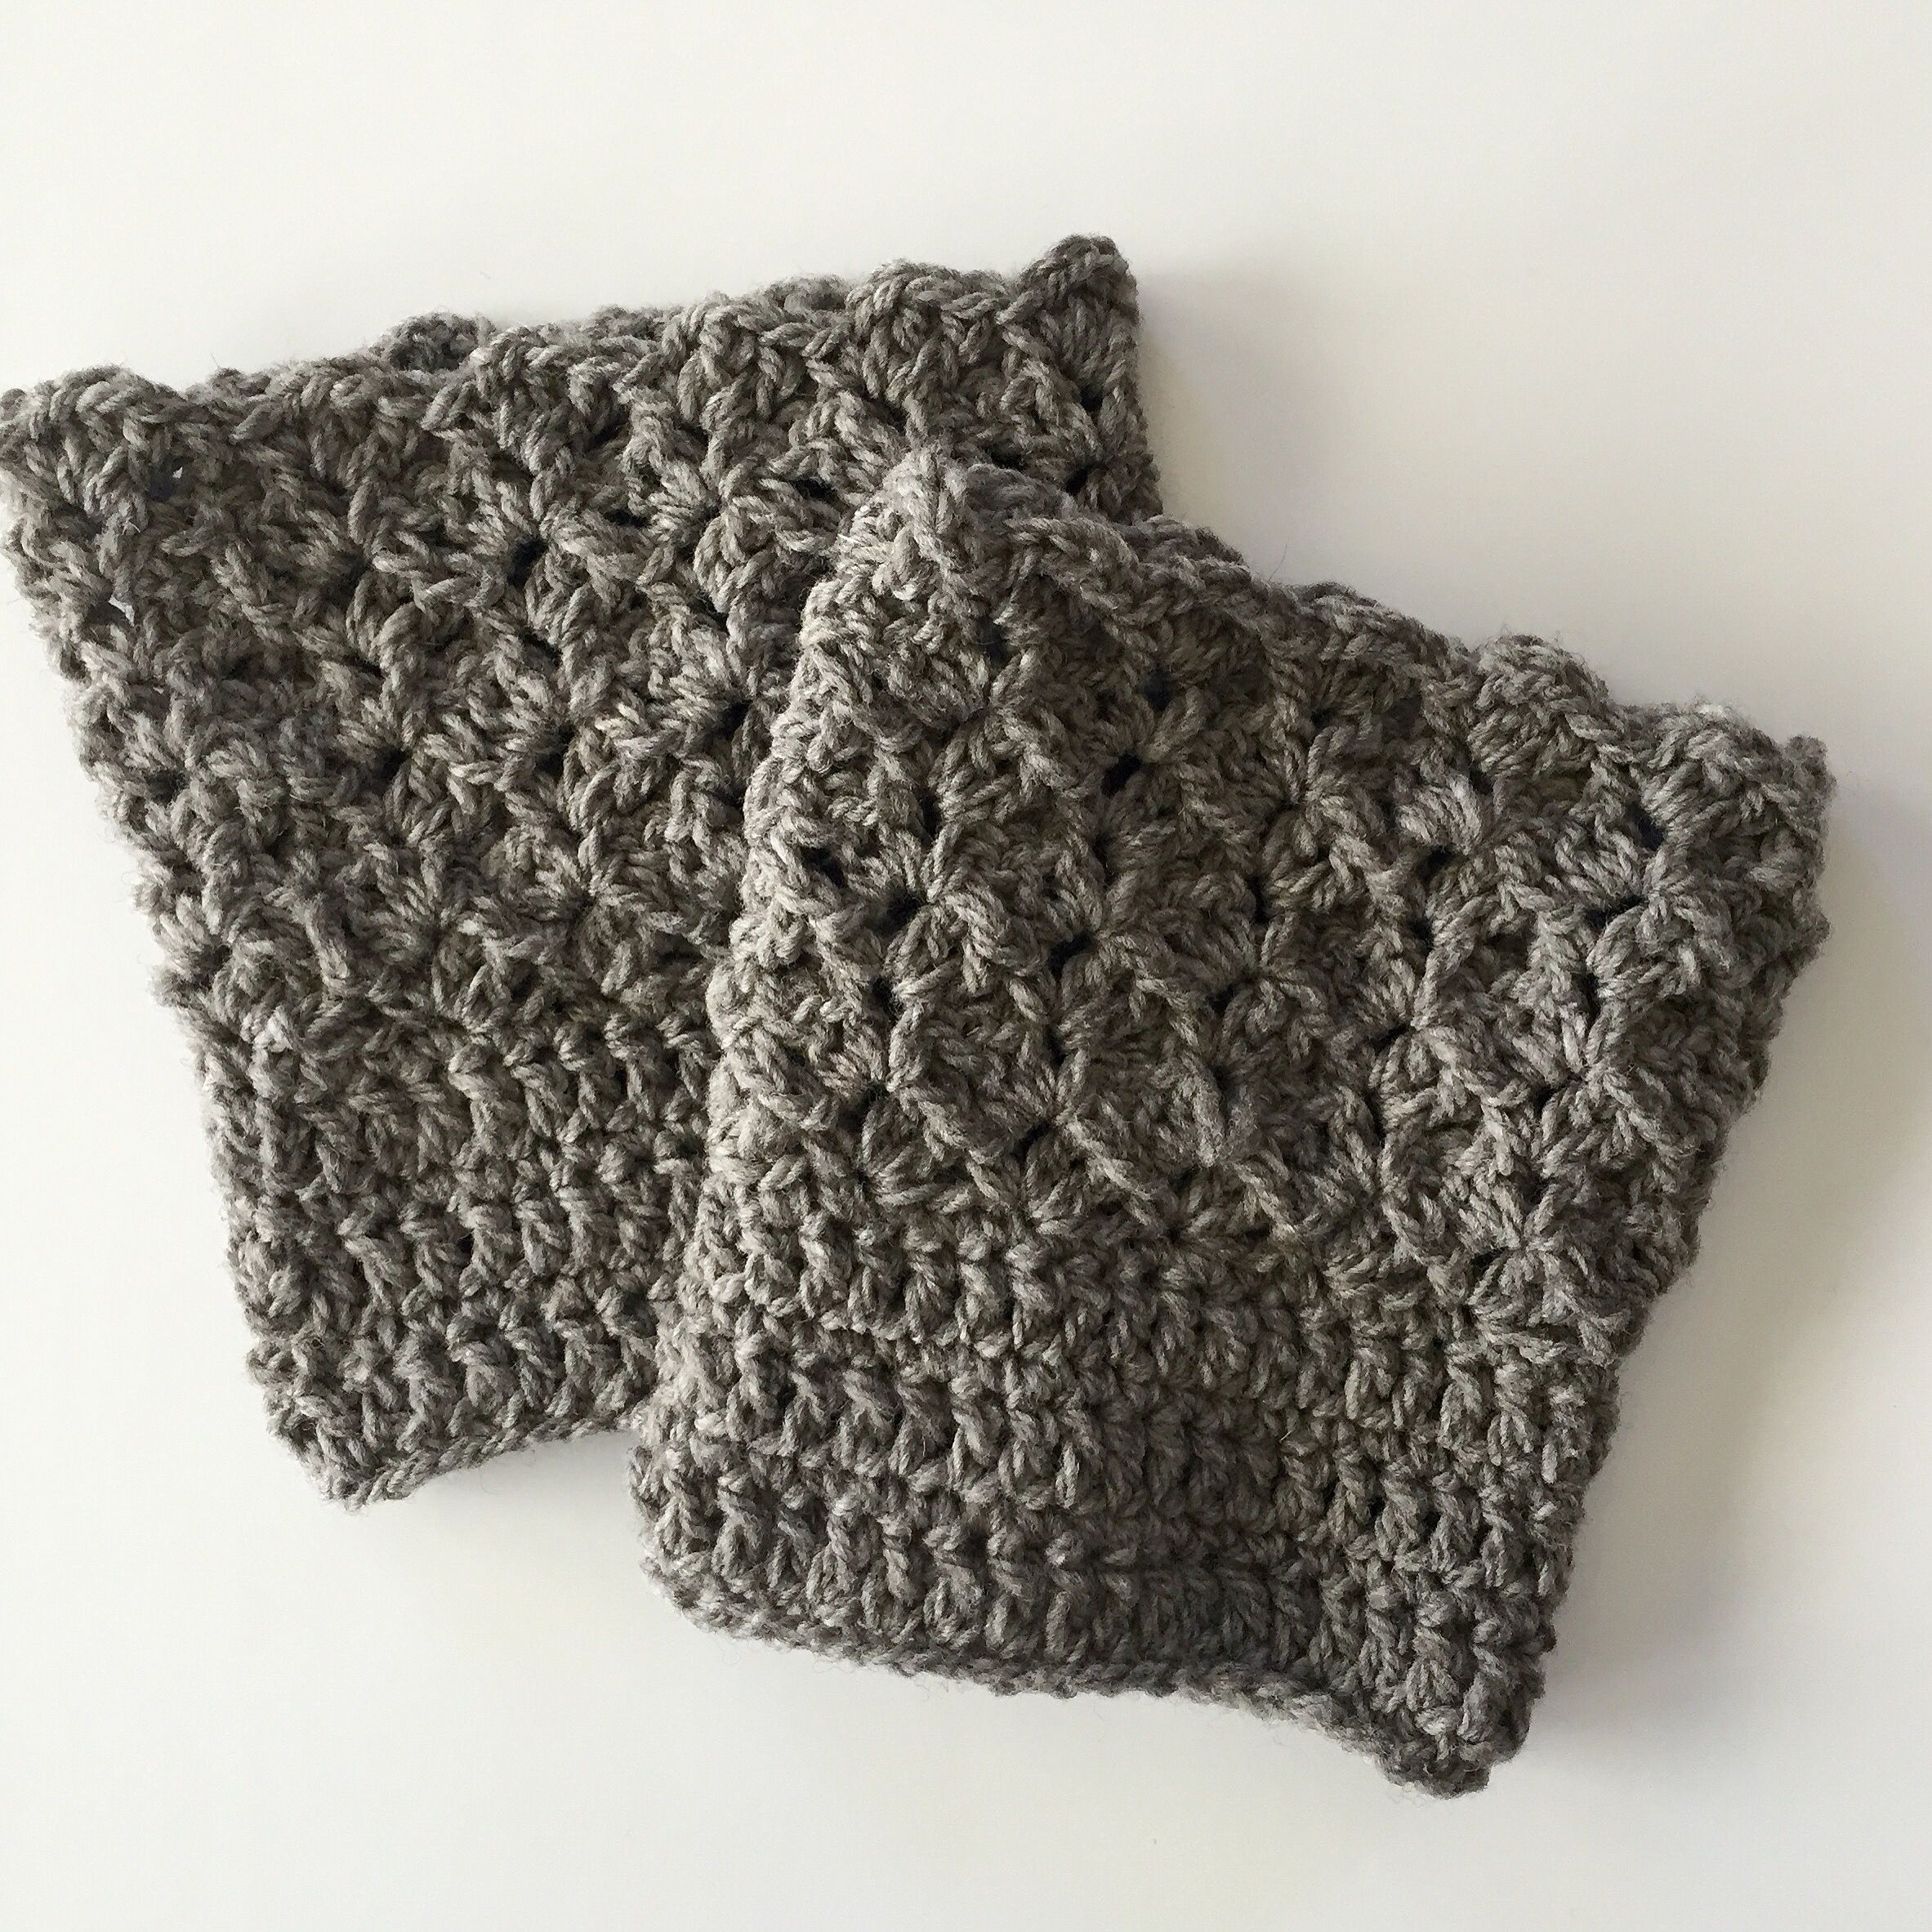 Crochet Pattern - Queen\'s Lace Boot Cuffs - Boot Socks for Toddlers ...